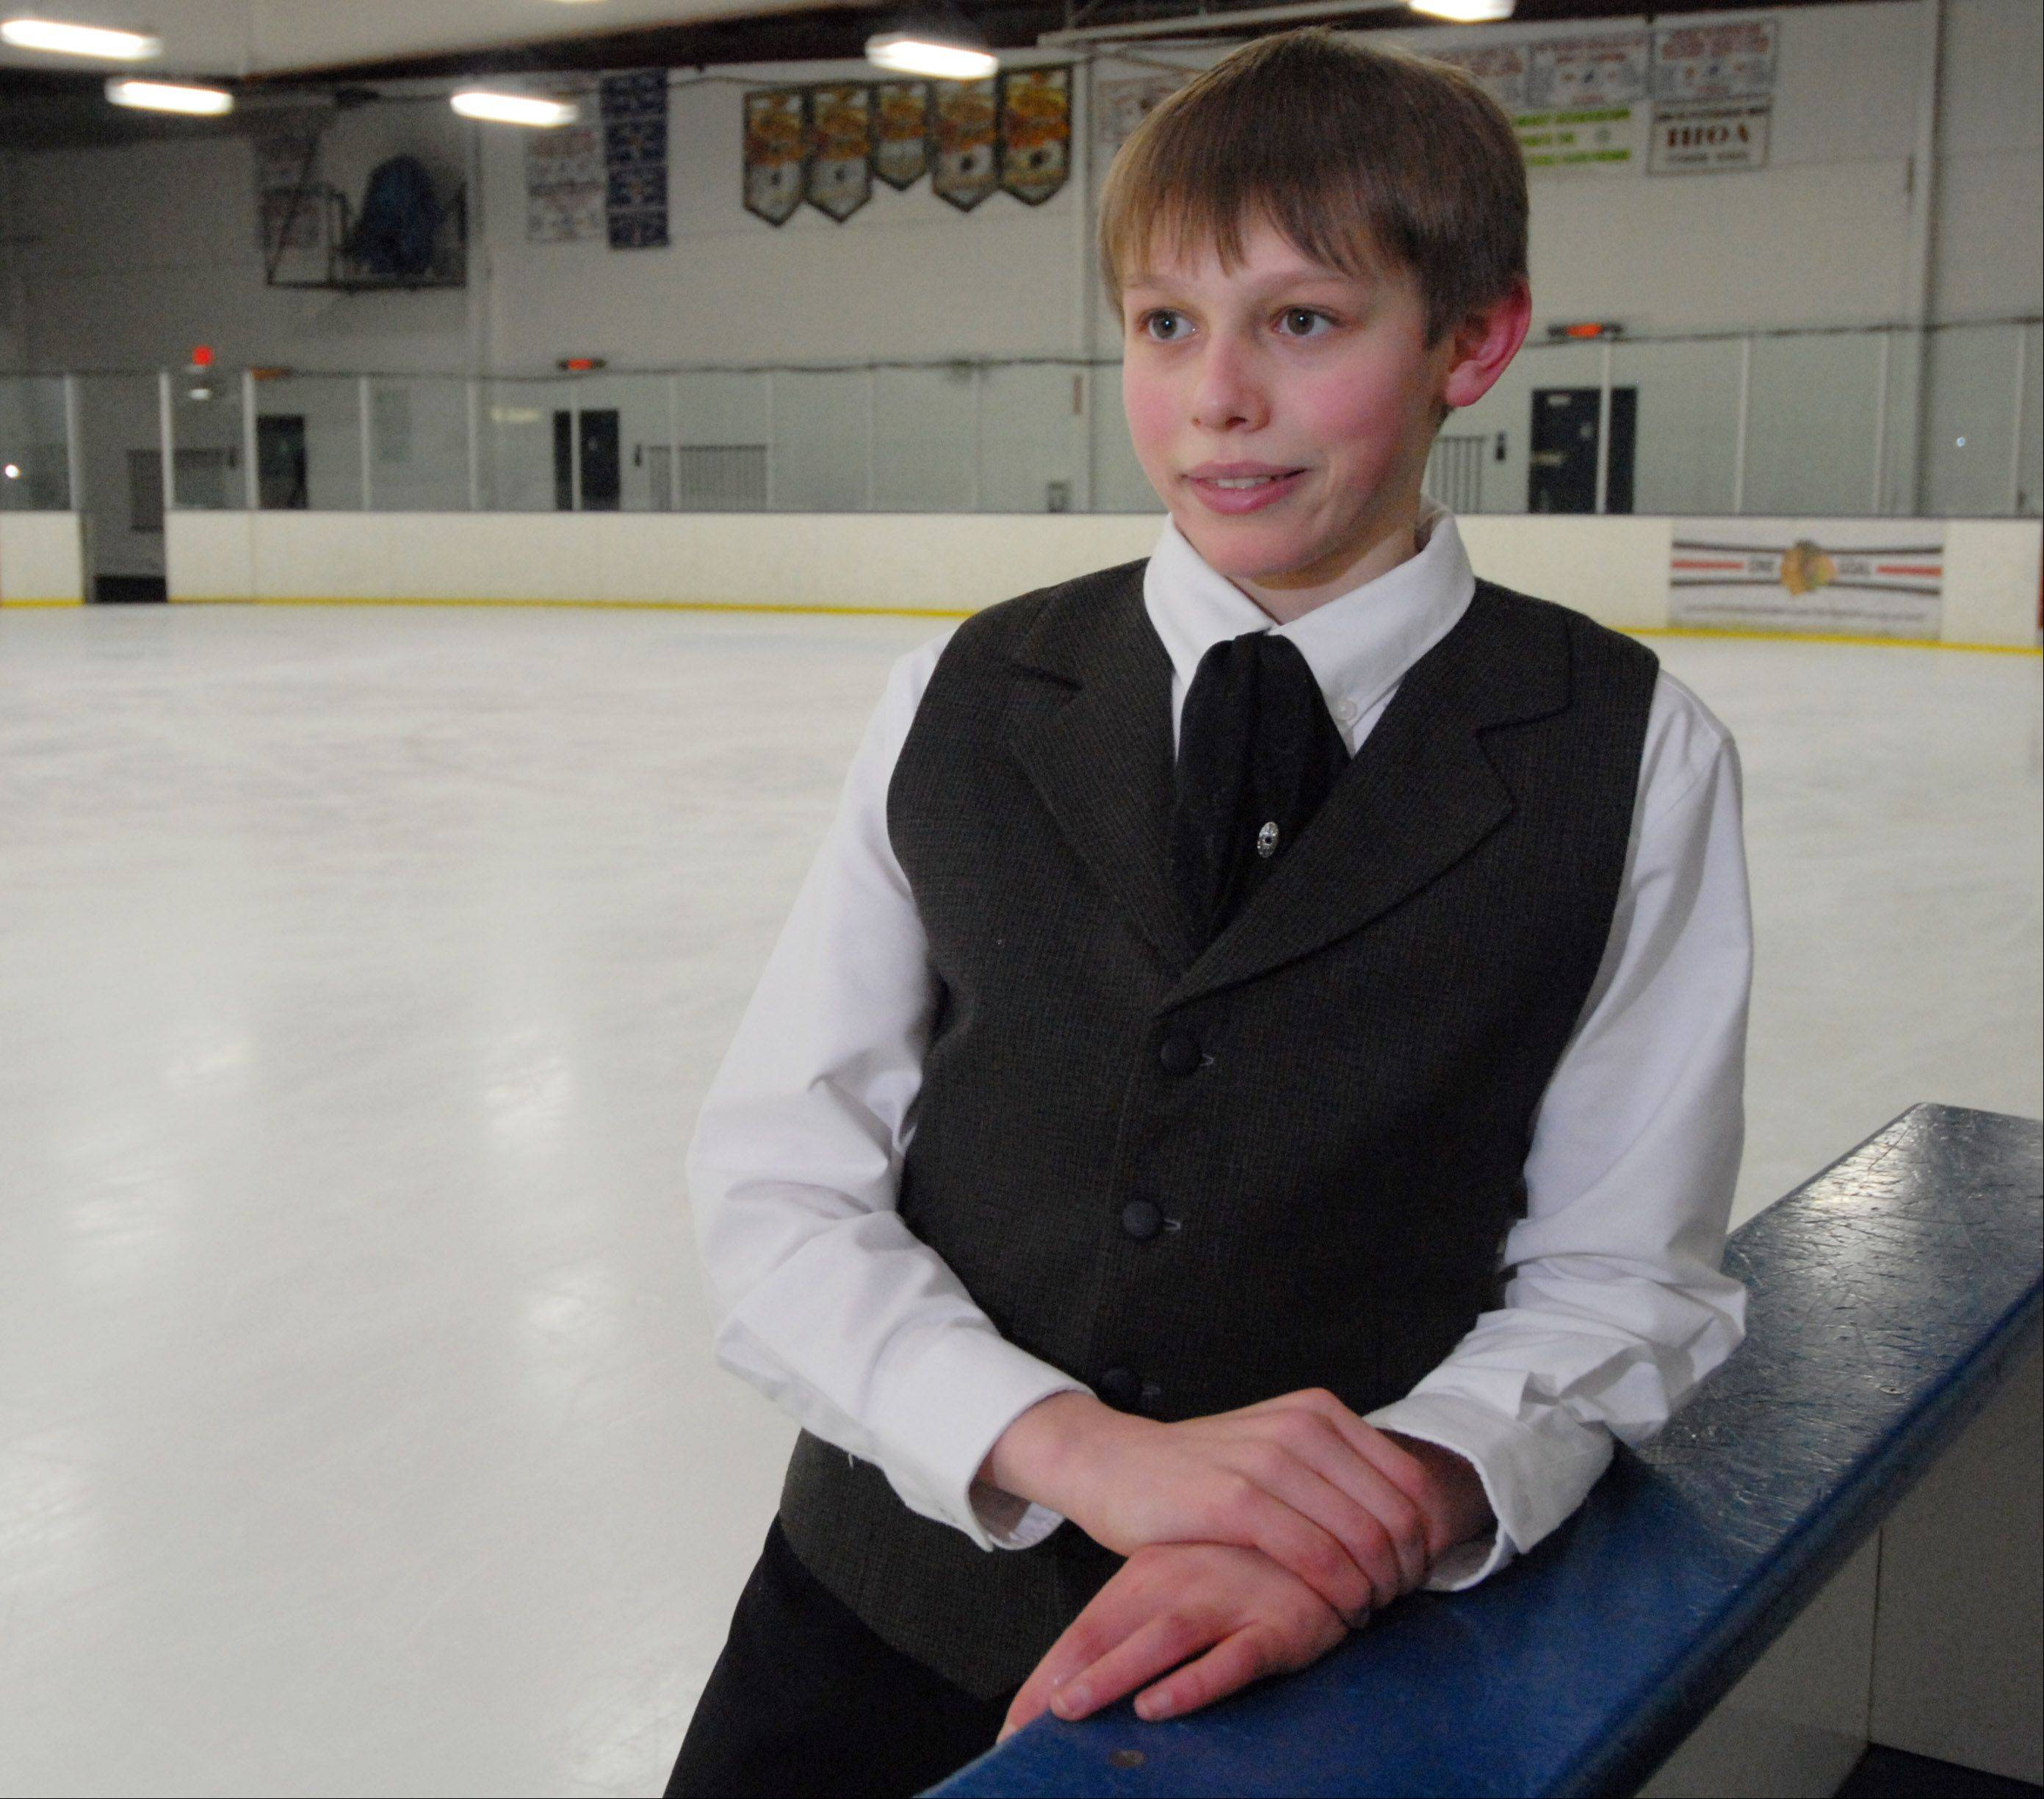 Derek Wagner of Geneva was ninth in the juvenile boys competition at the 2012 U.S. Junior Figure Skating Championships in December.